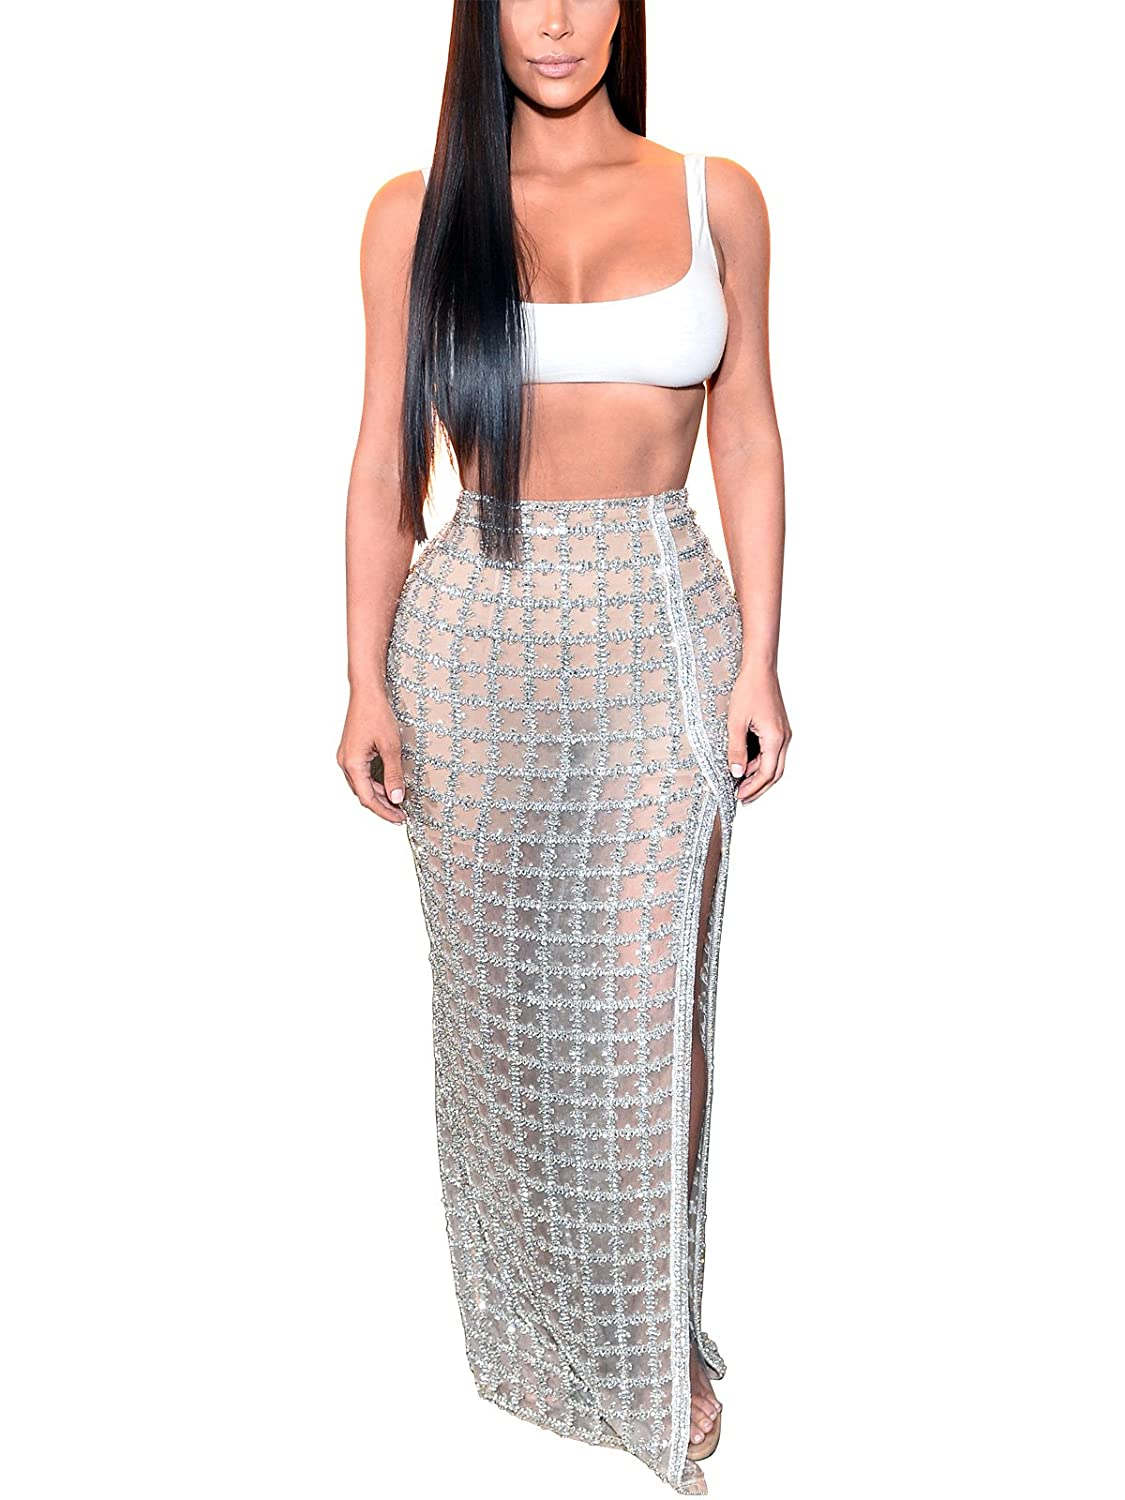 168b28b112 S Curve Women's Bandage Crop Top and Slit Long Plaid Maxi Skirt 2 Piece  Bodycon Club Party Dress at Amazon Women's Clothing store: